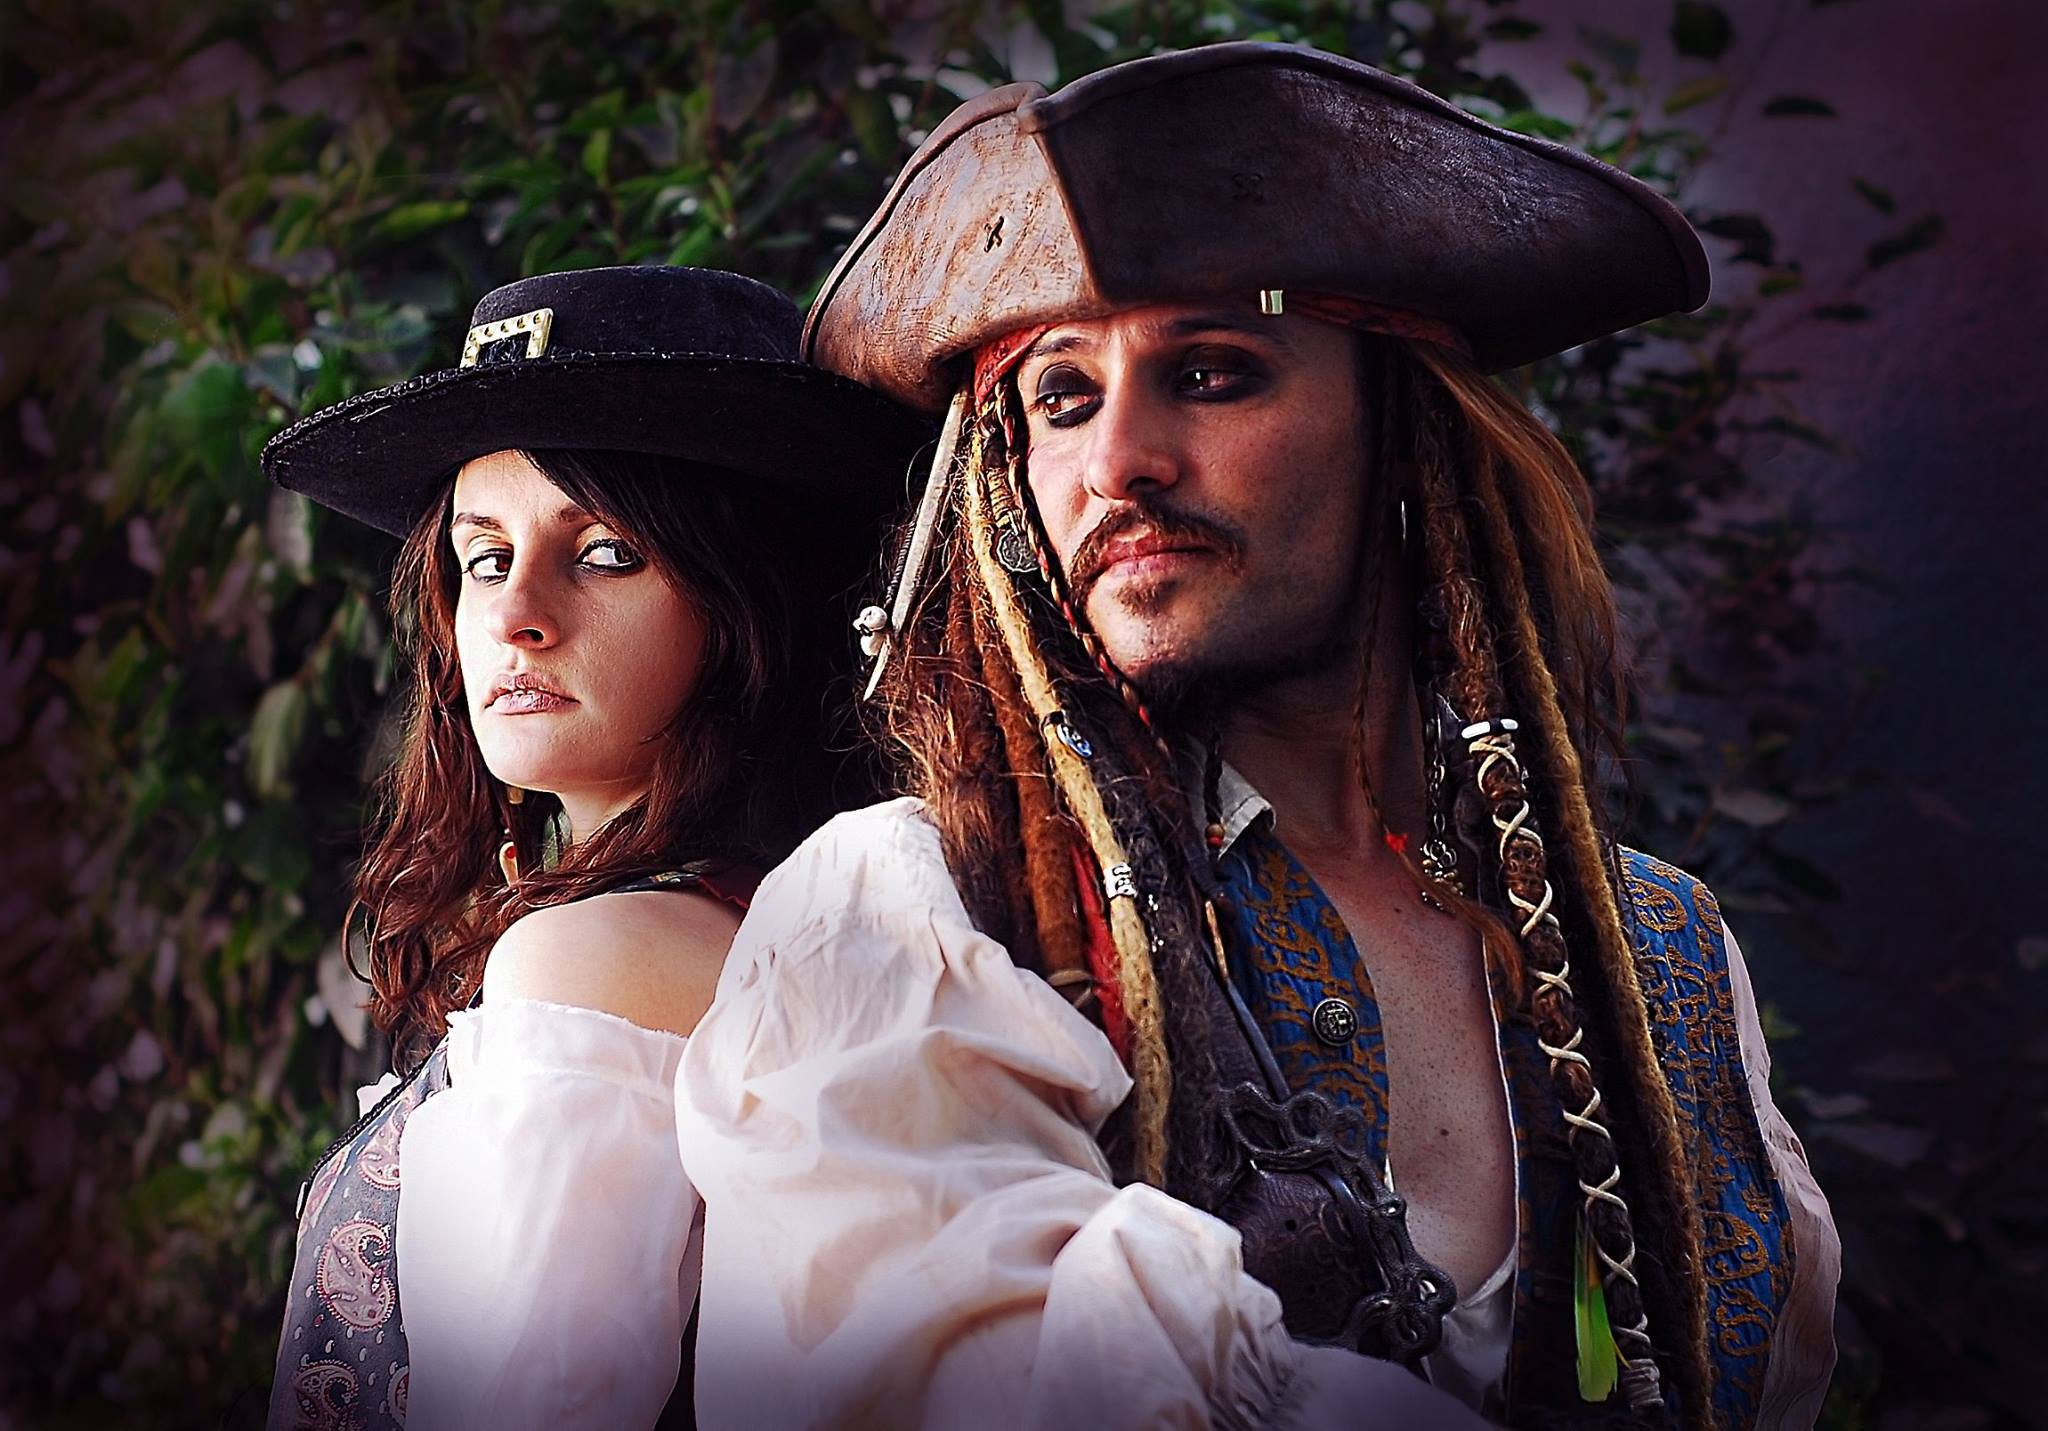 angelica-teach-e-jack-sparrow (7)